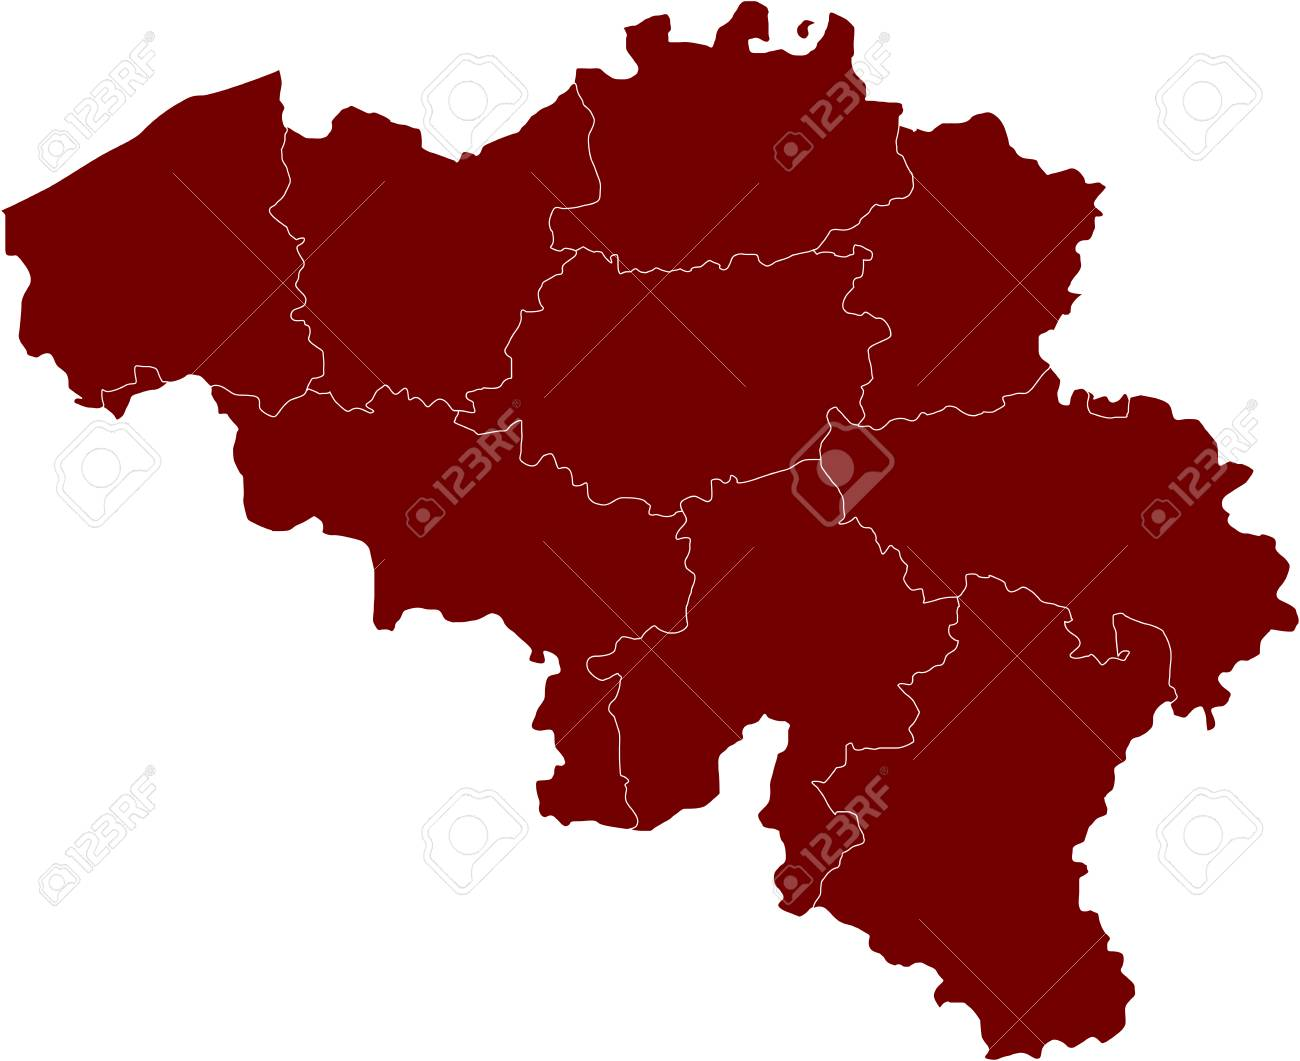 There is a map of Belgium country Stock Vector - 4361608